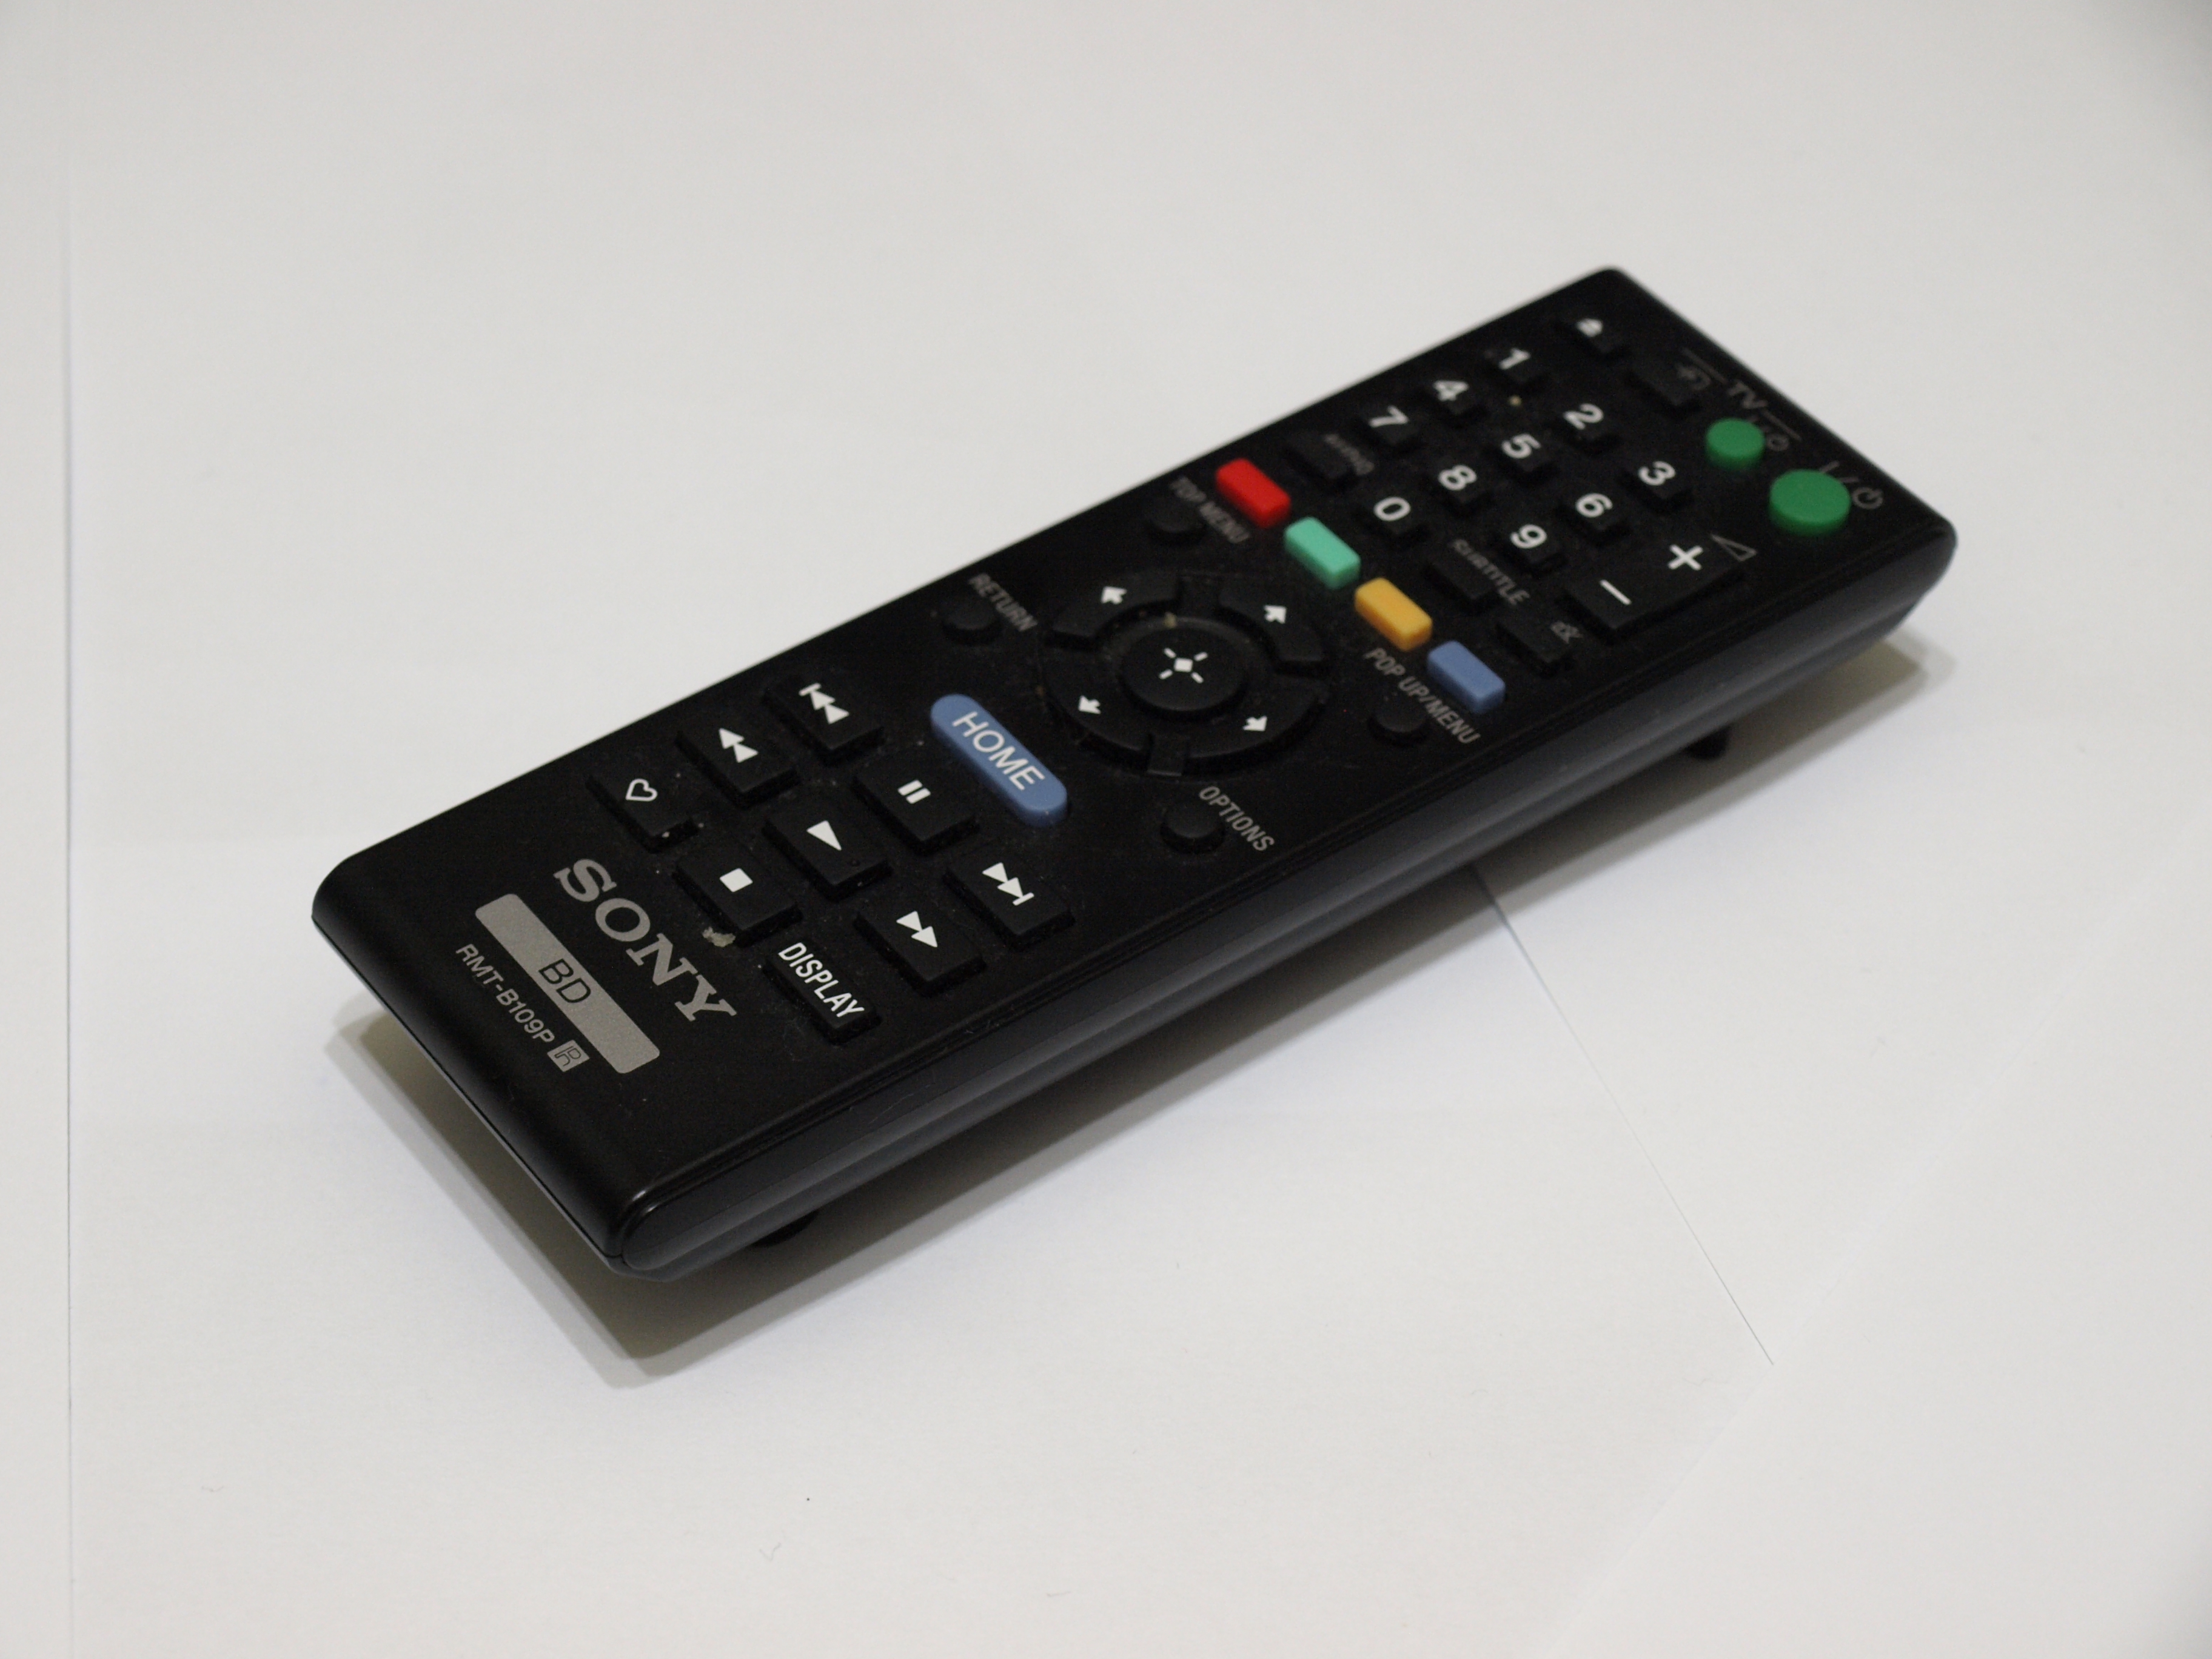 File:Sony DVD remote control 1.jpg - Wikimedia Commons